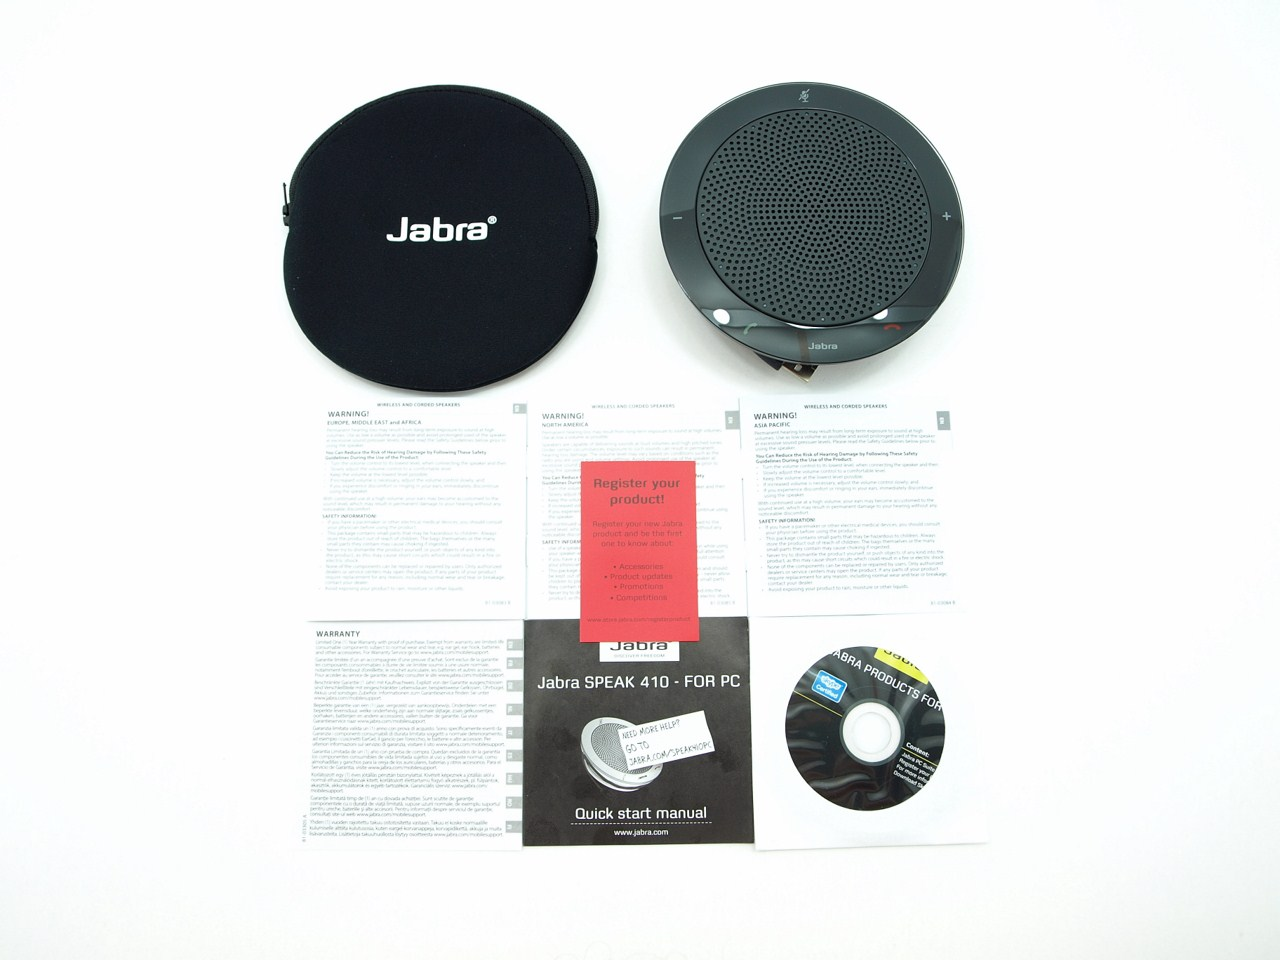 Jabra SPEAK 410 USB Speakerphone Review